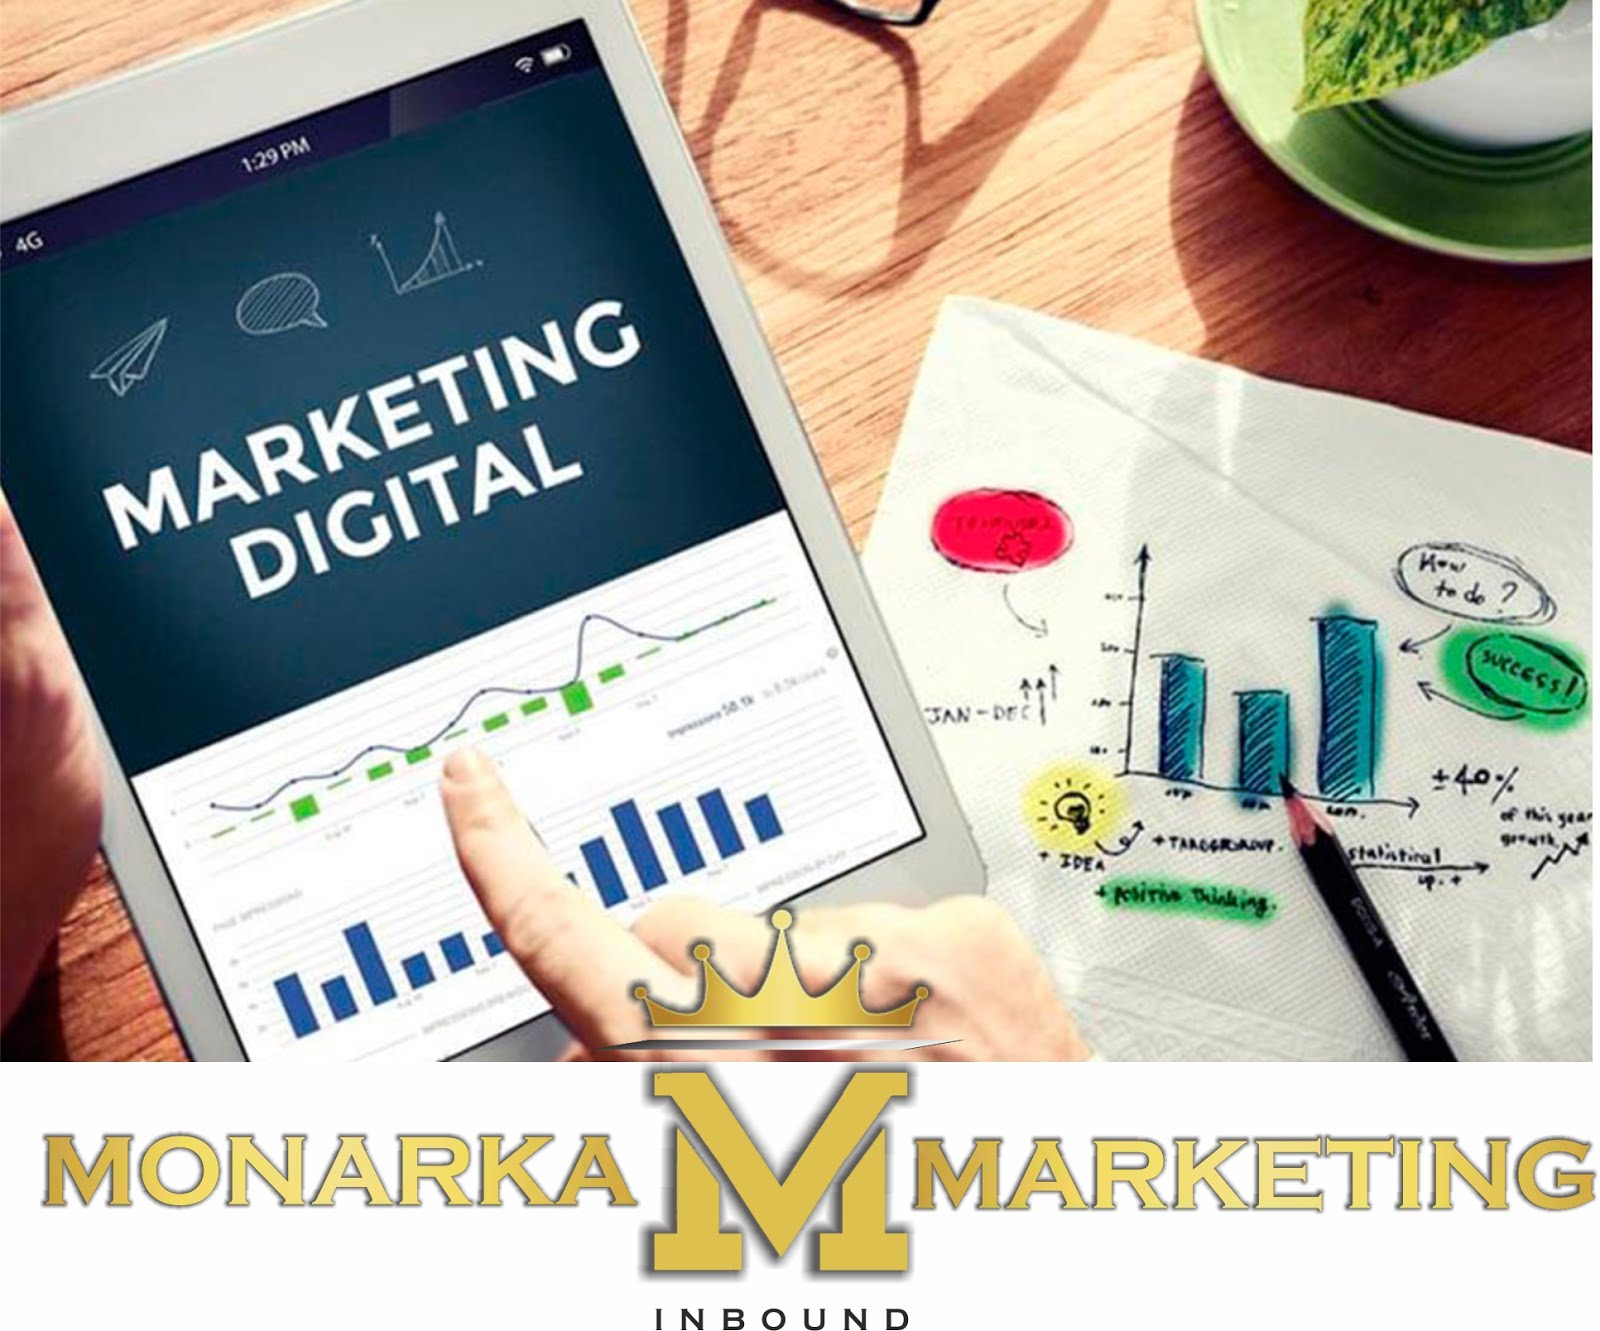 Marketing Digital/Clik para ir ao site